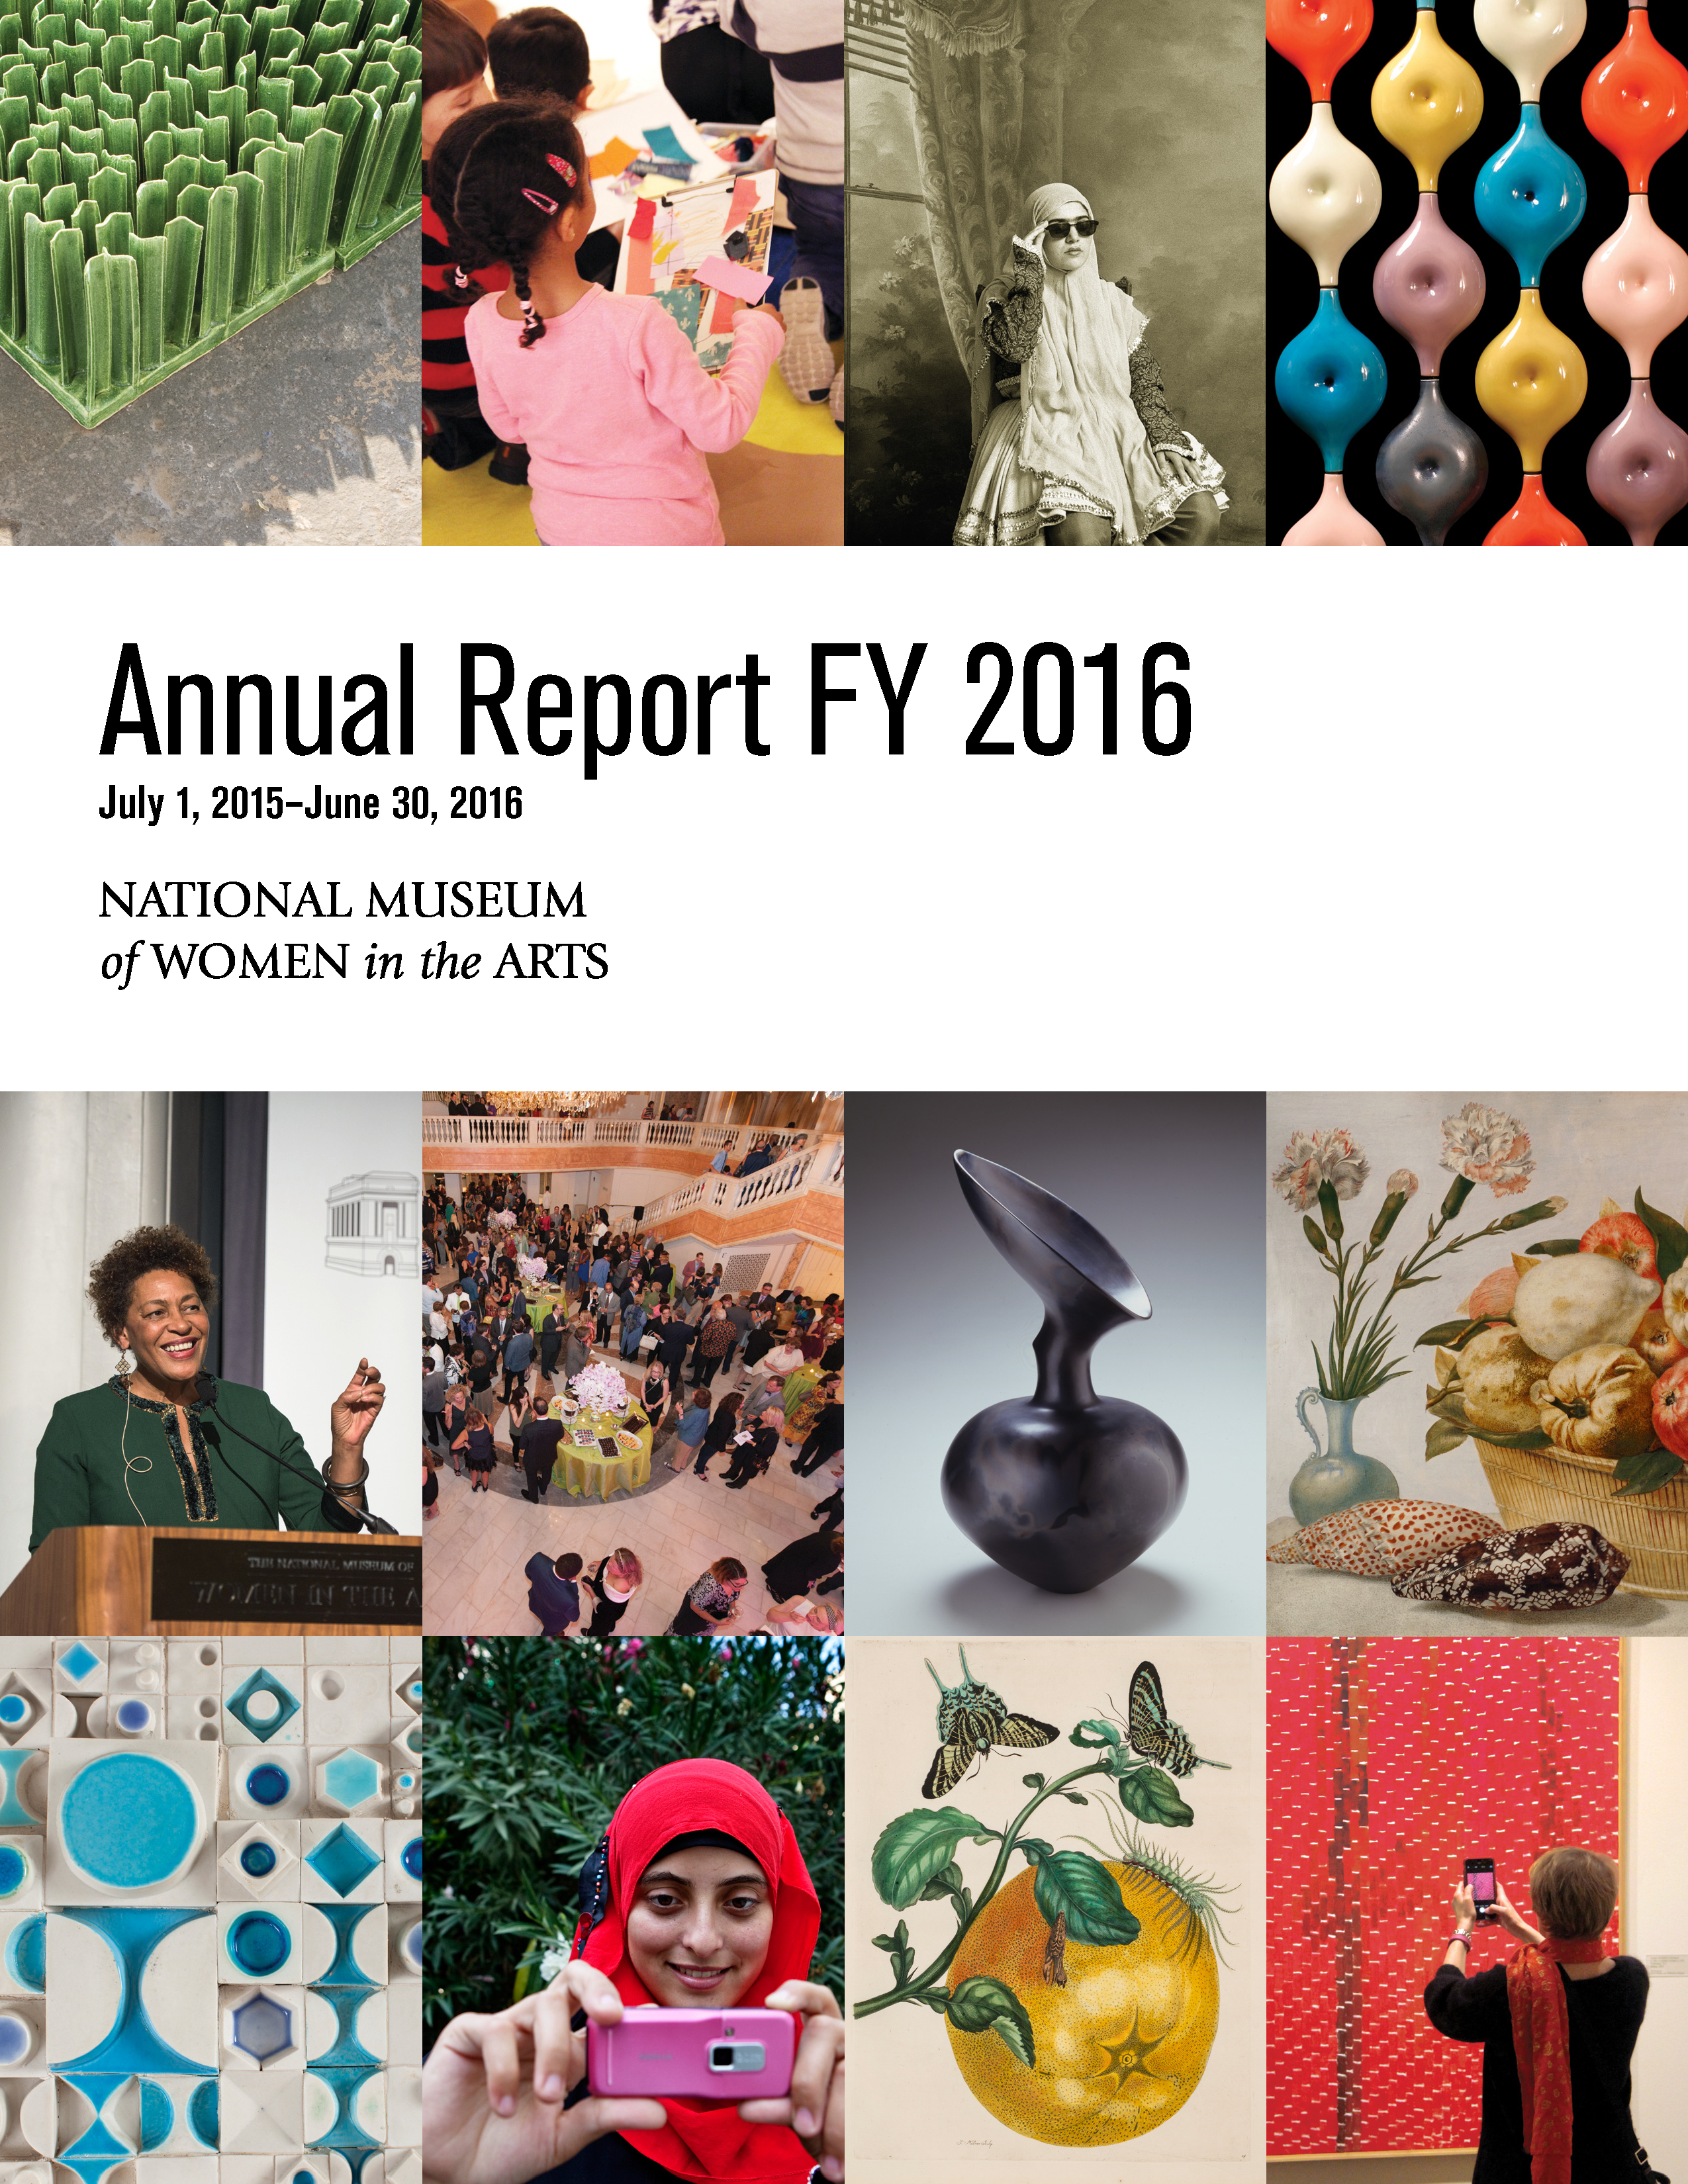 Cover of the 2016 annual report shows 12 tiled images along with the text 'Annual Report FY2016, July 1, 2015–June 30, 2016